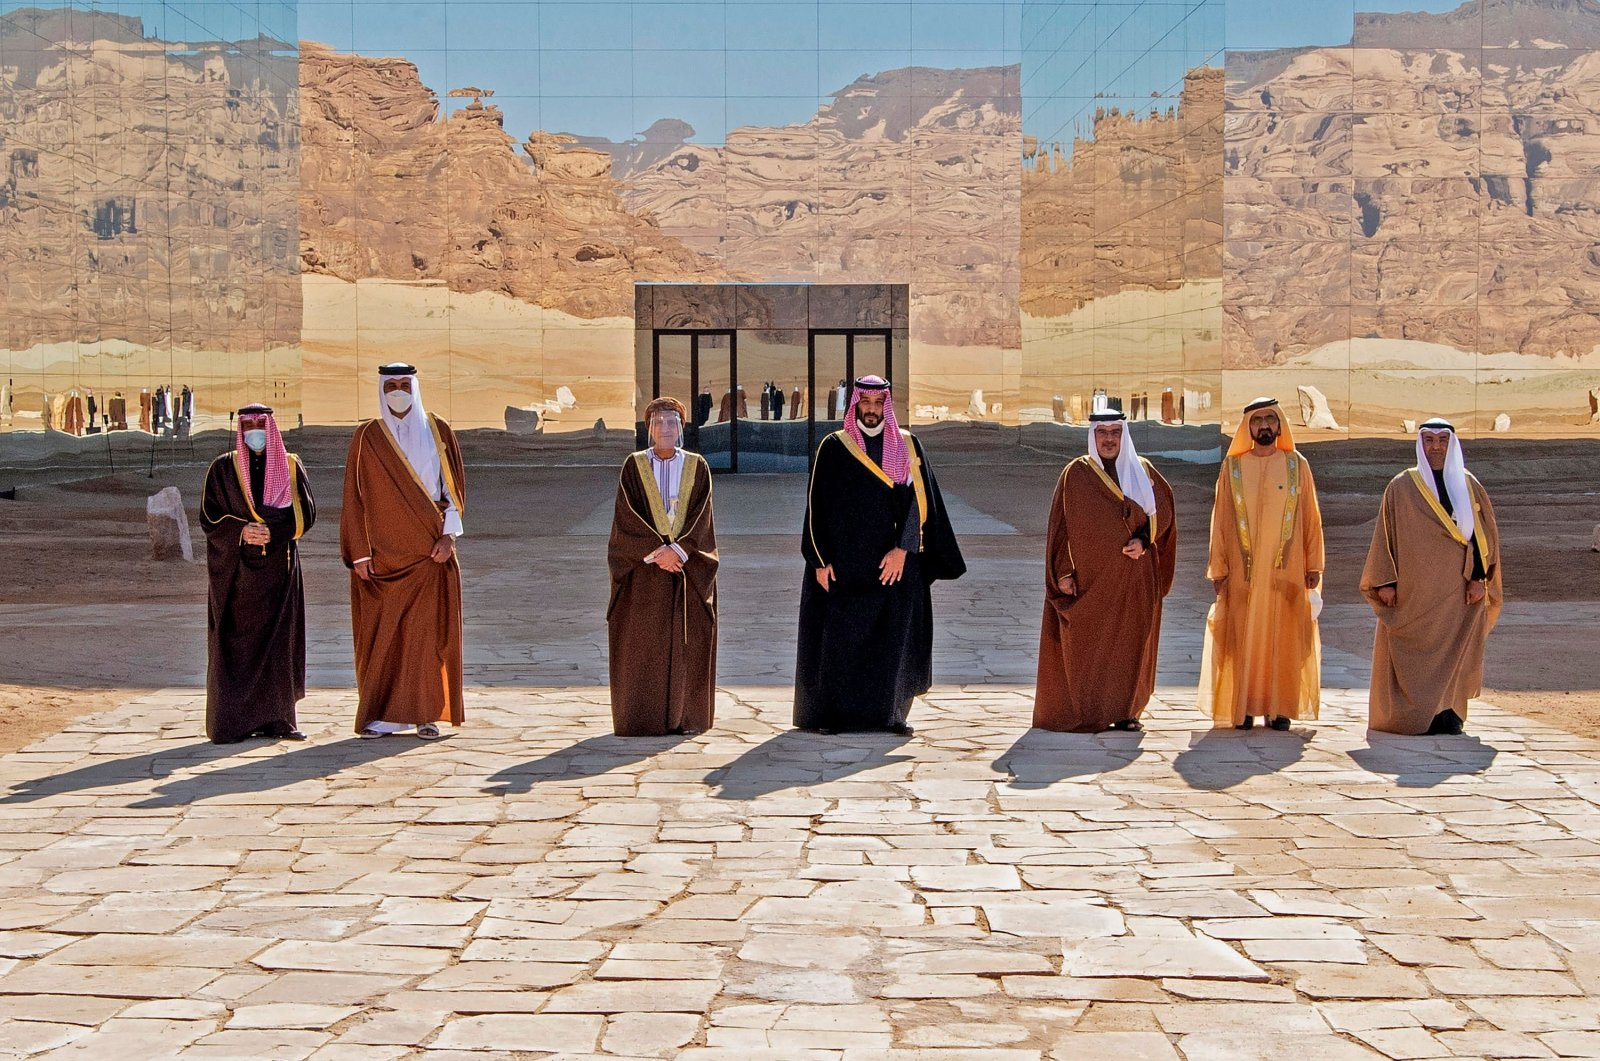 Gulf leaders pose for a picture before the opening session of the 41st Gulf Cooperation Council (GCC) summit that ended the rift between Qatar and the Saudi-led bloc, Al-Ula, Saudi Arabia, Jan. 5, 2021. (AFP Photo)